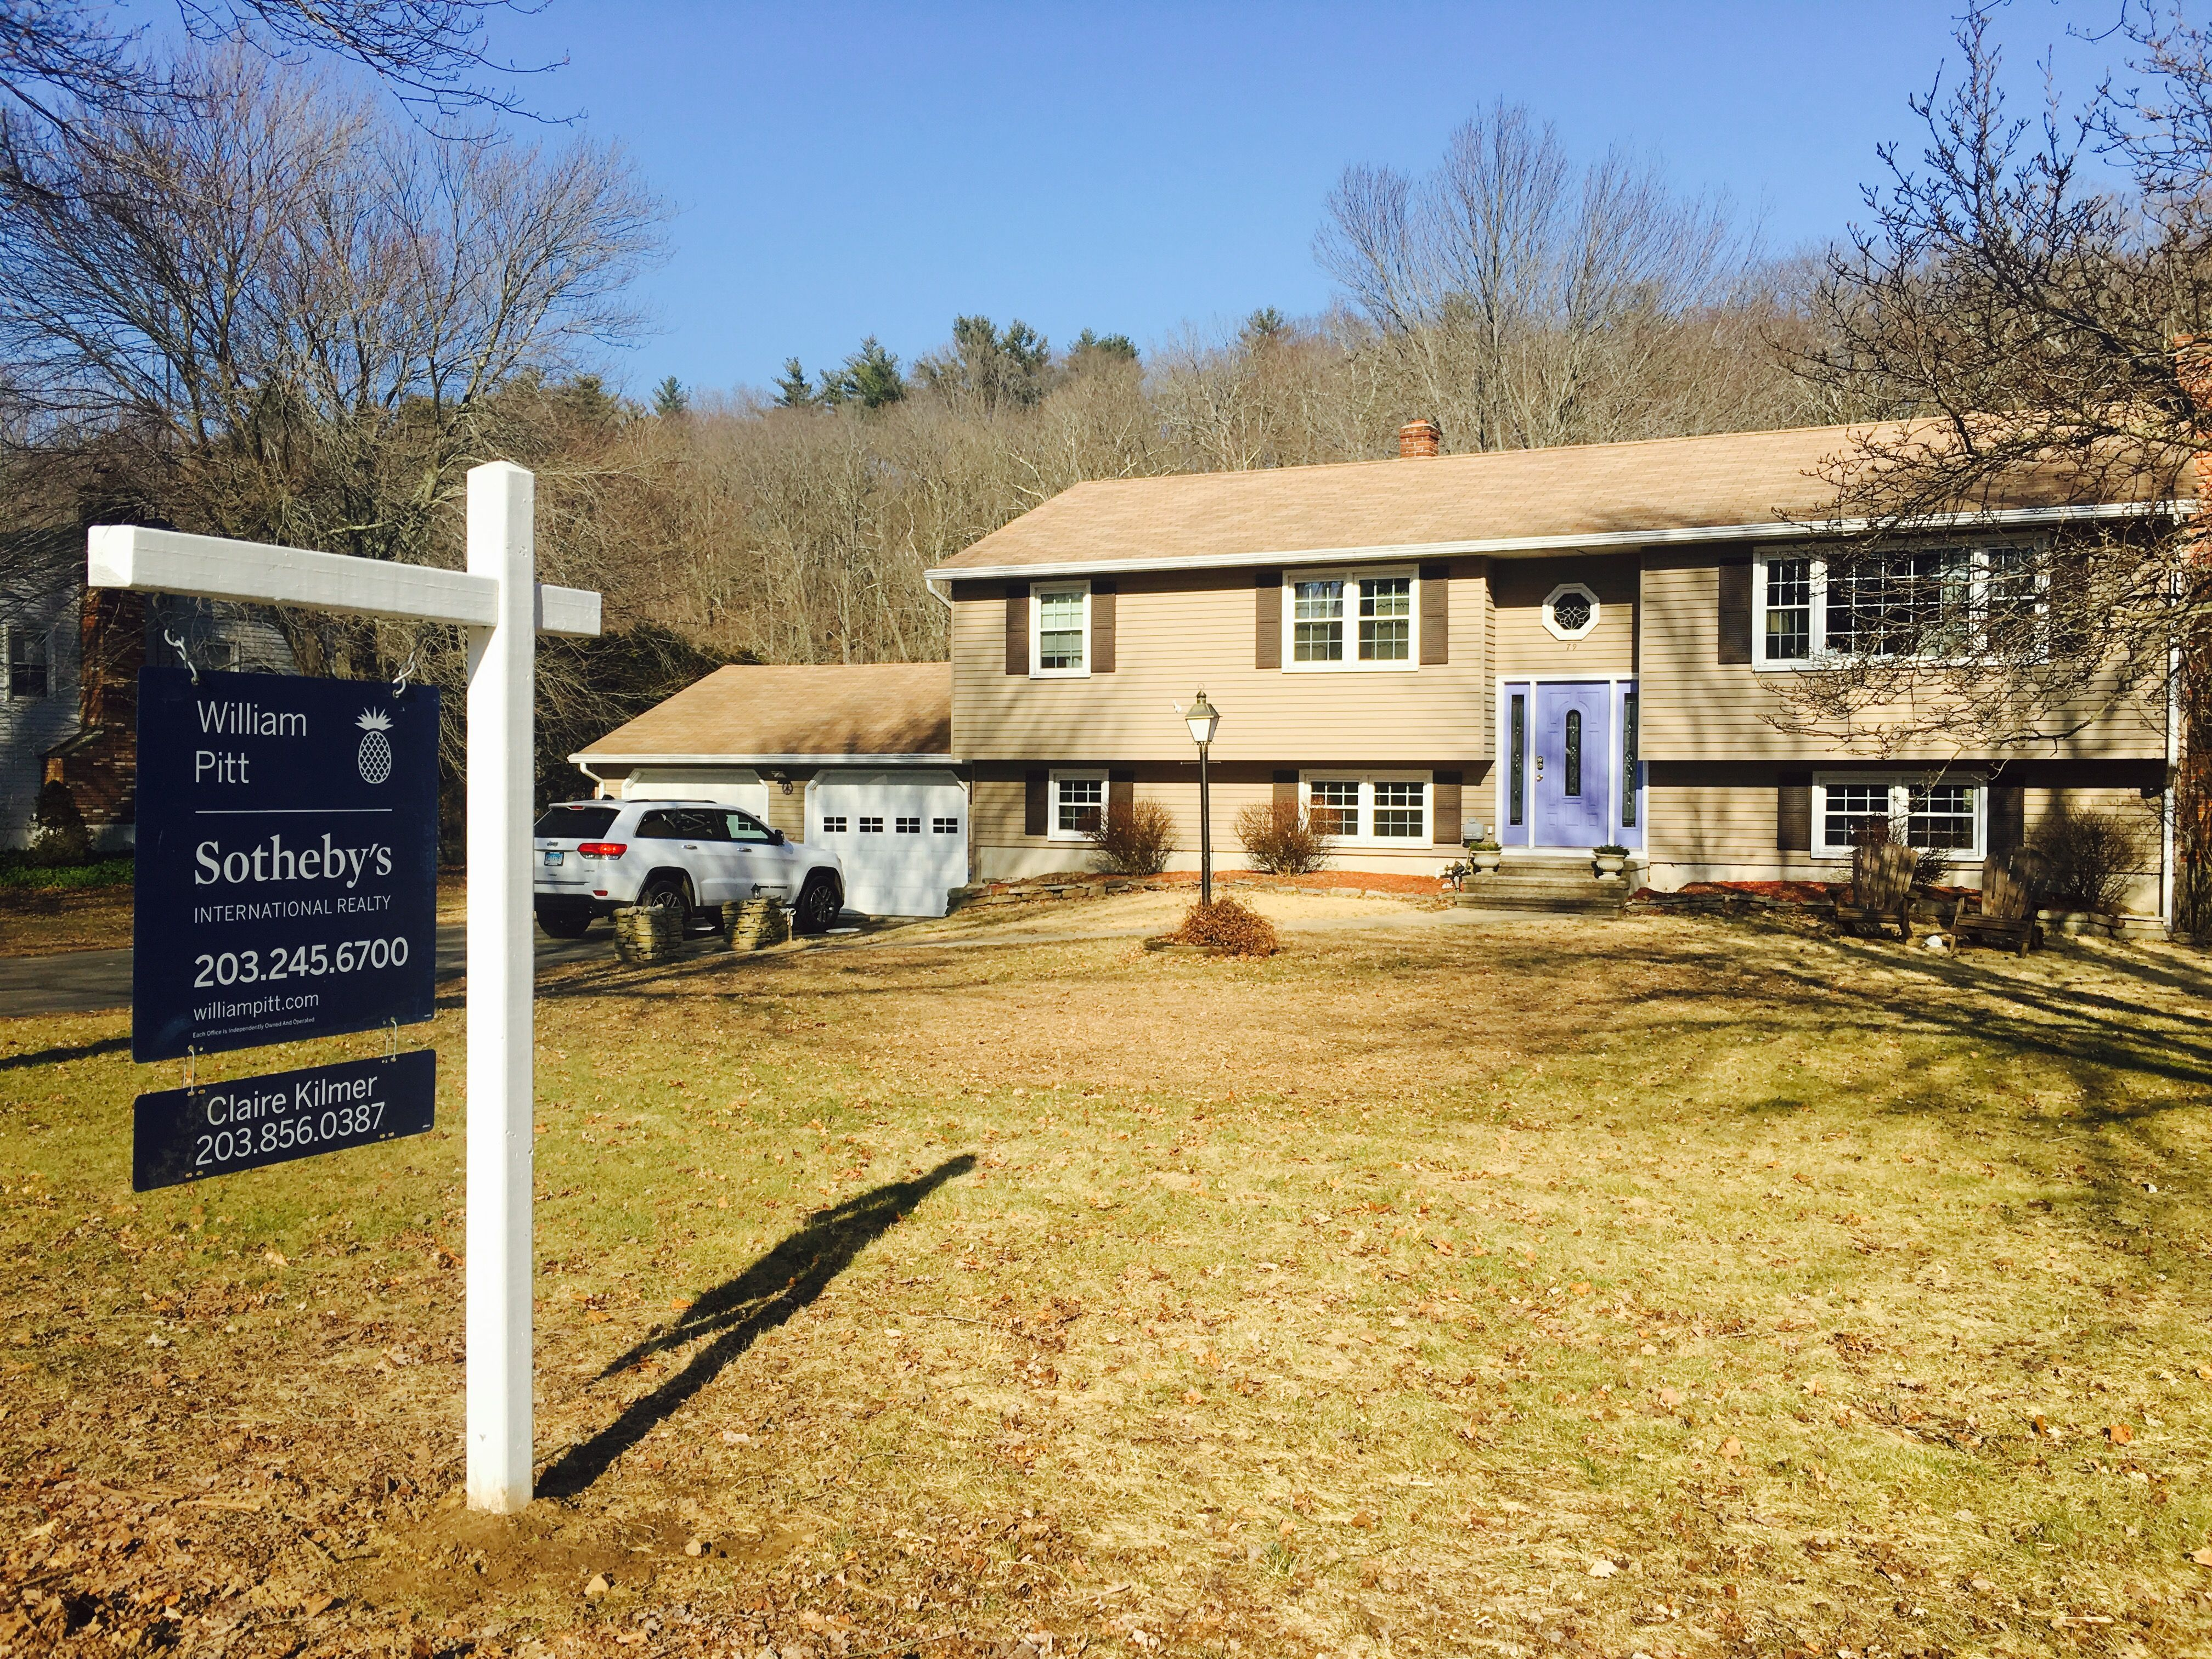 russo drive guilford ct sale pending agreement accepted in 2 days rh pinterest com